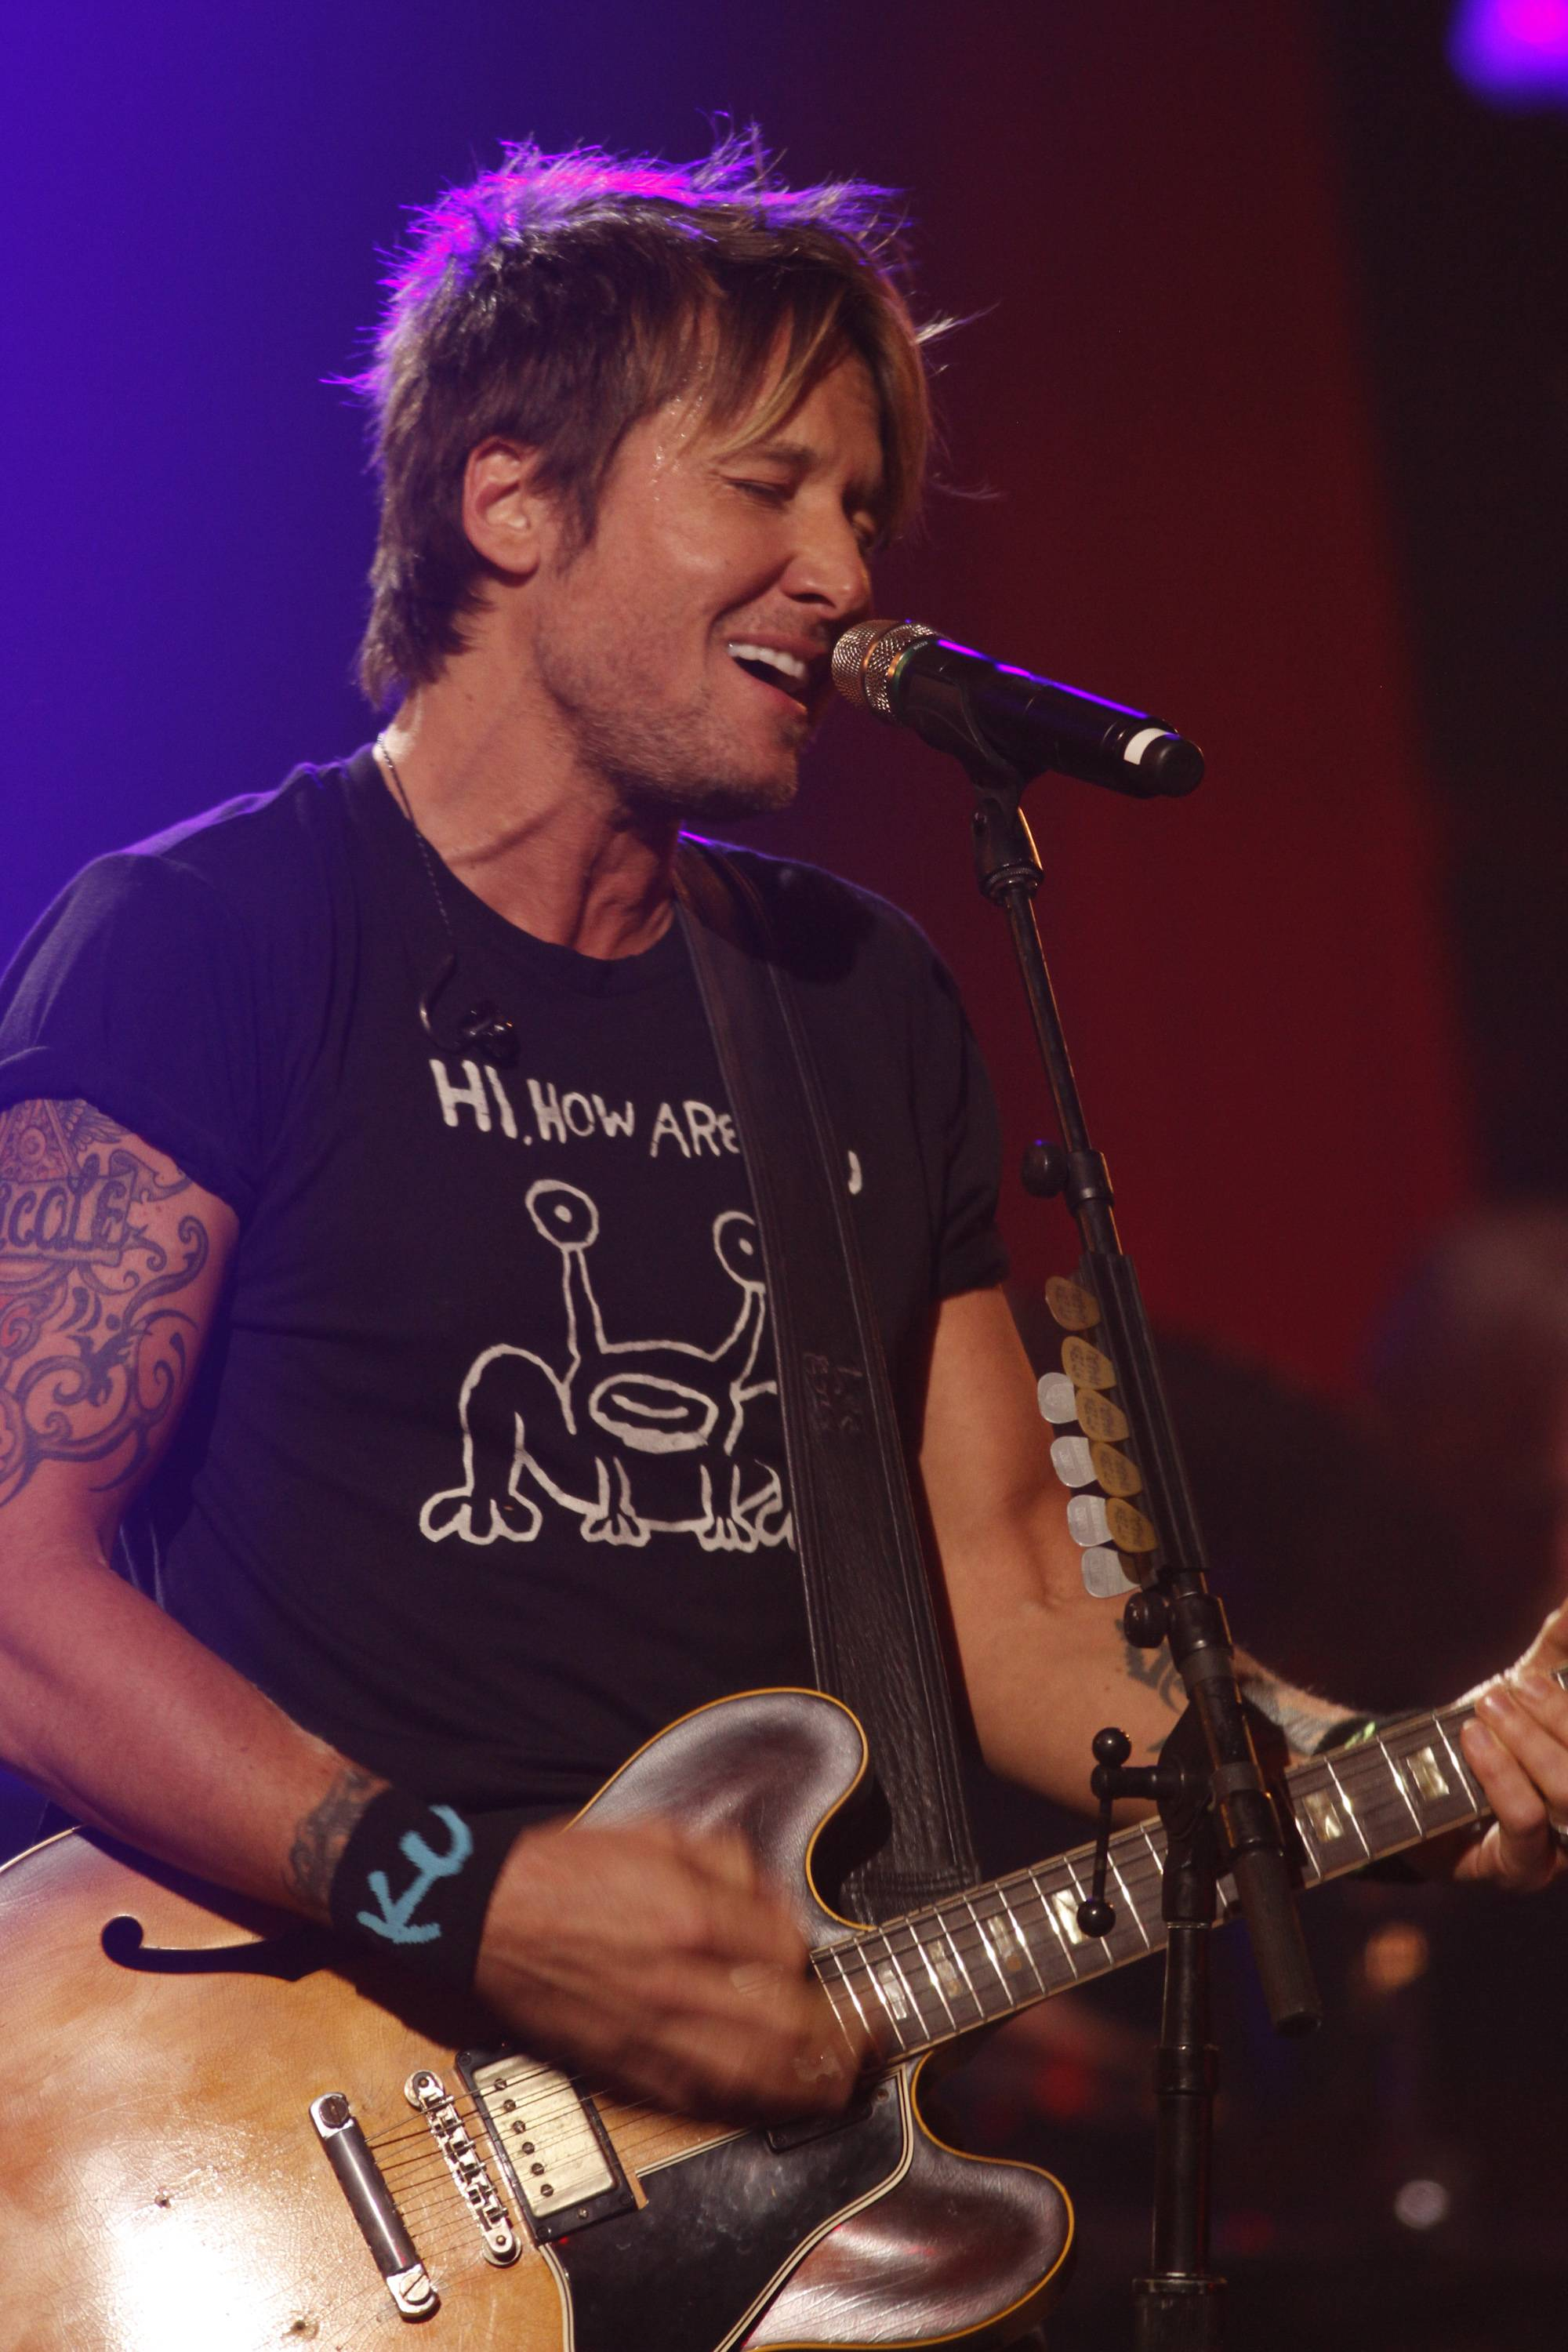 Keith Urban performs at the iTunes Festival during the SXSW Music Festival Saturday in Austin, Texas.